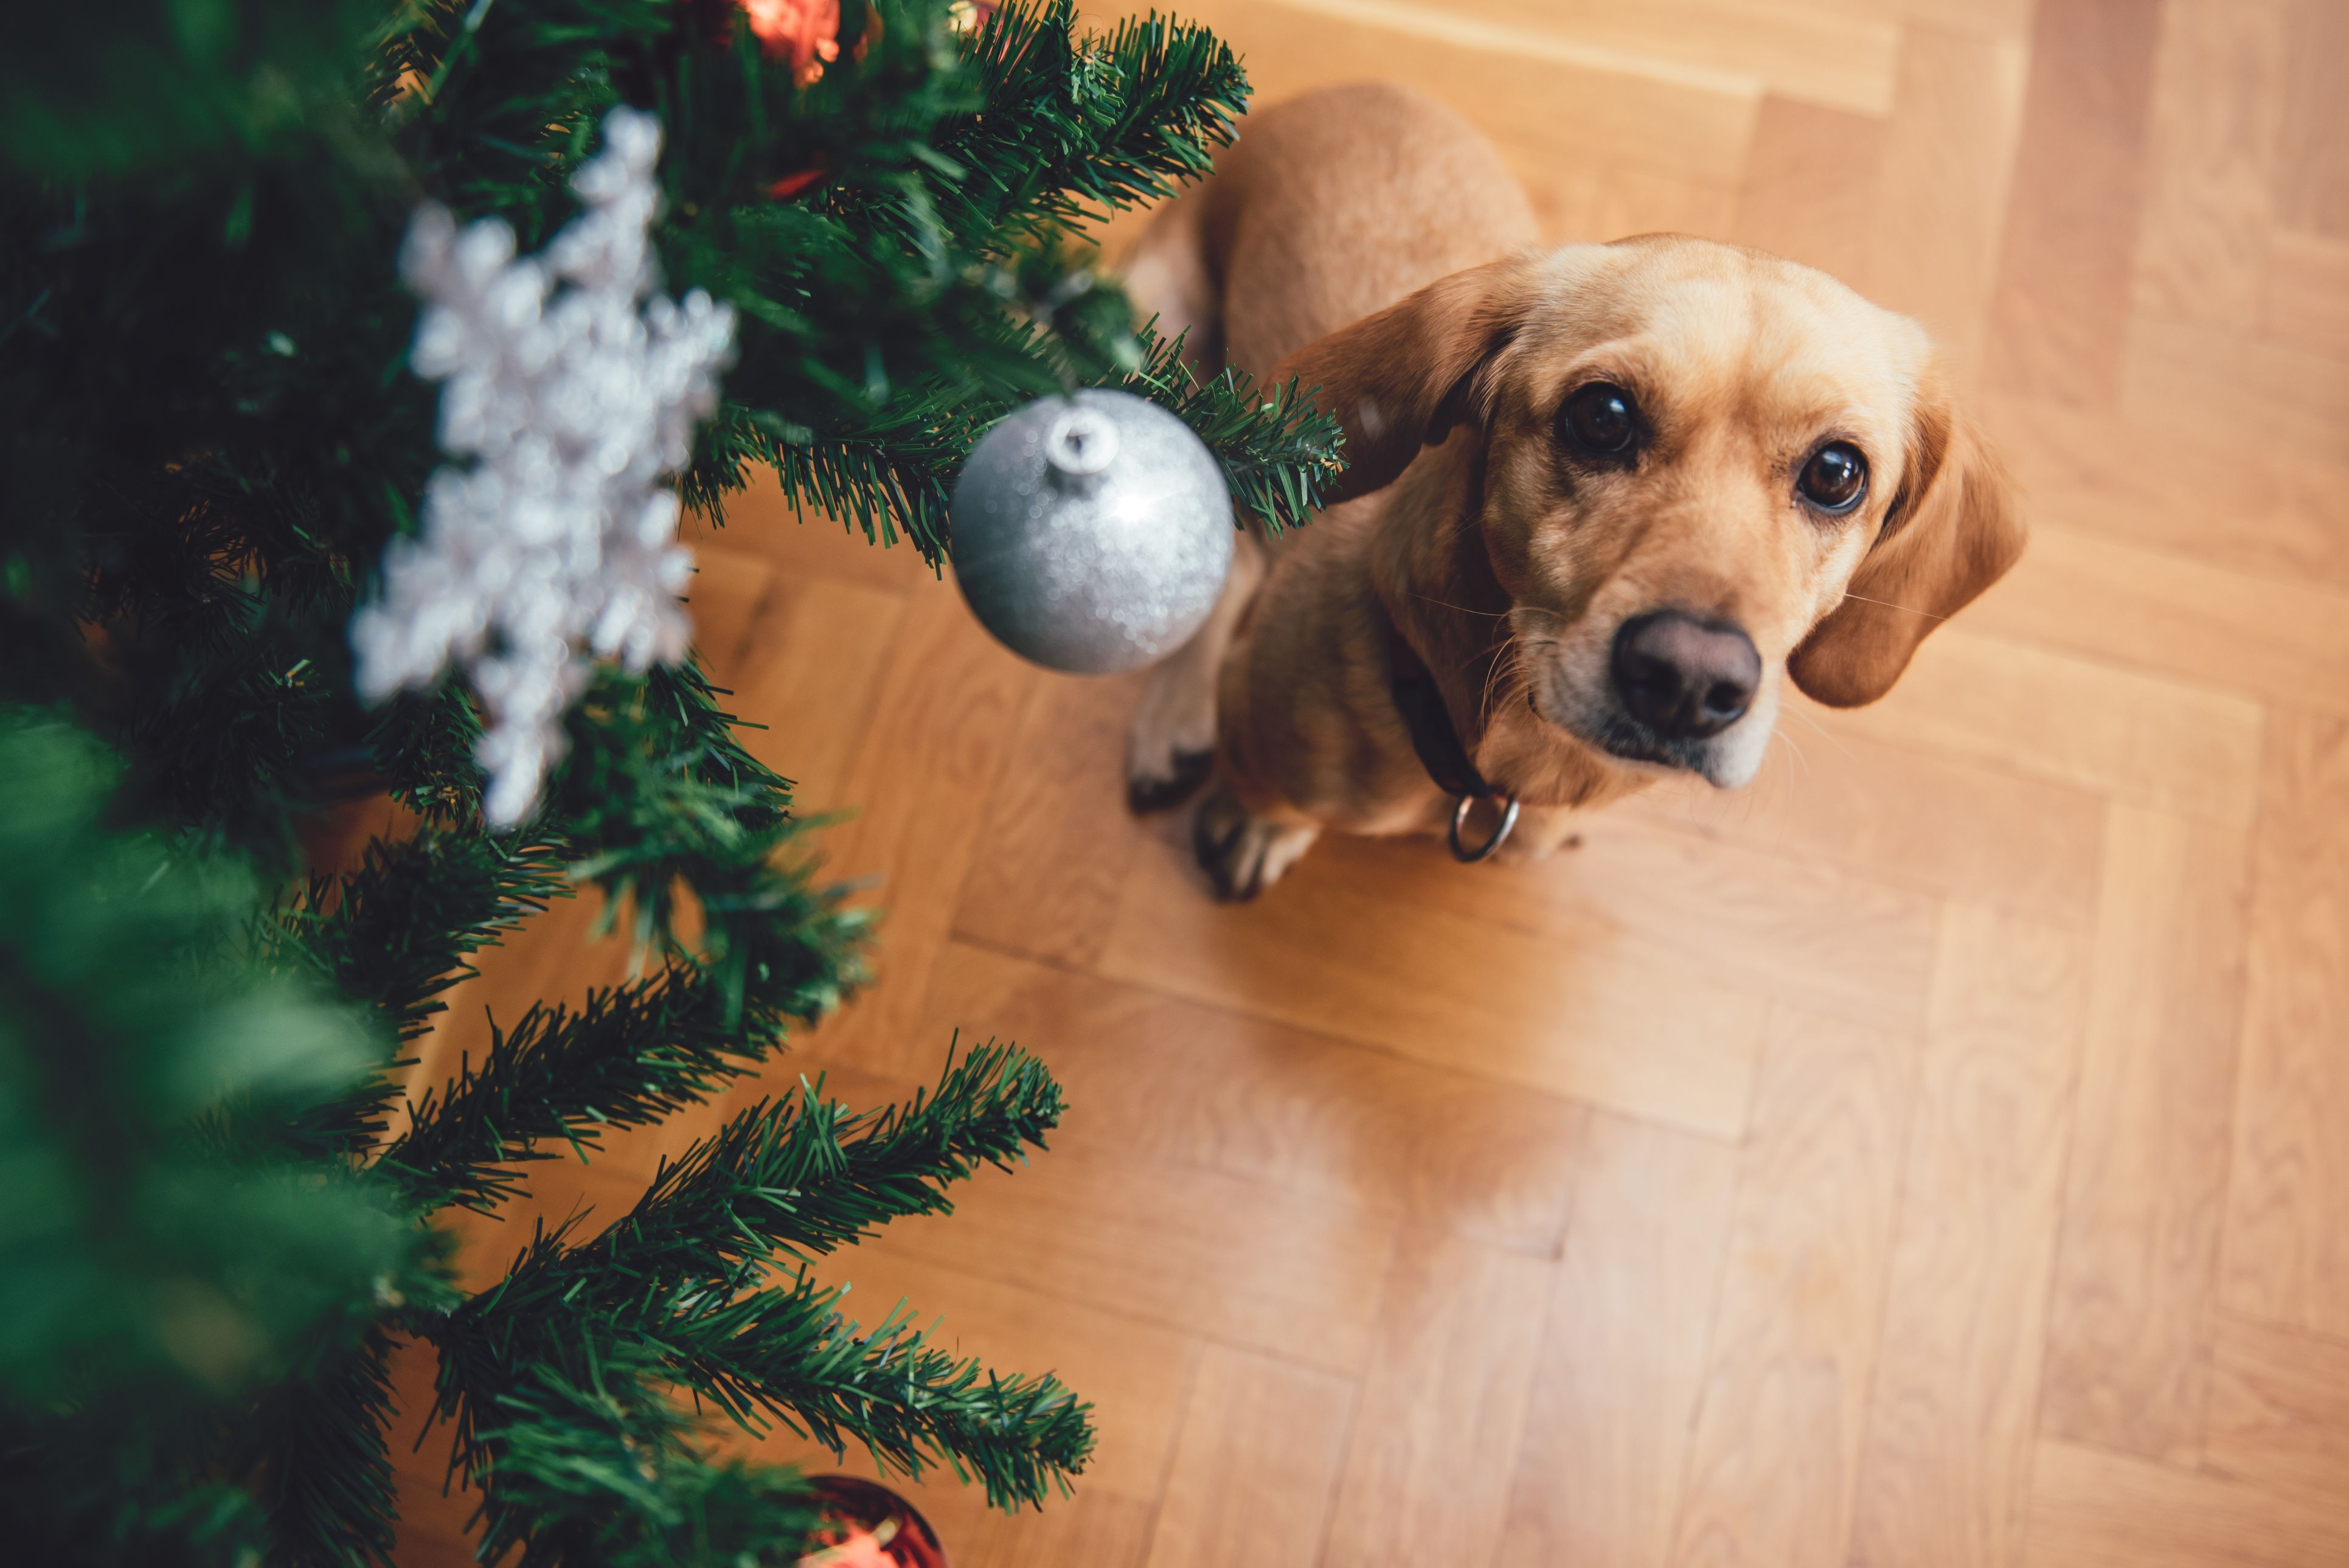 Portal Christmas Trees Are A Massive Hit With Dog Owners